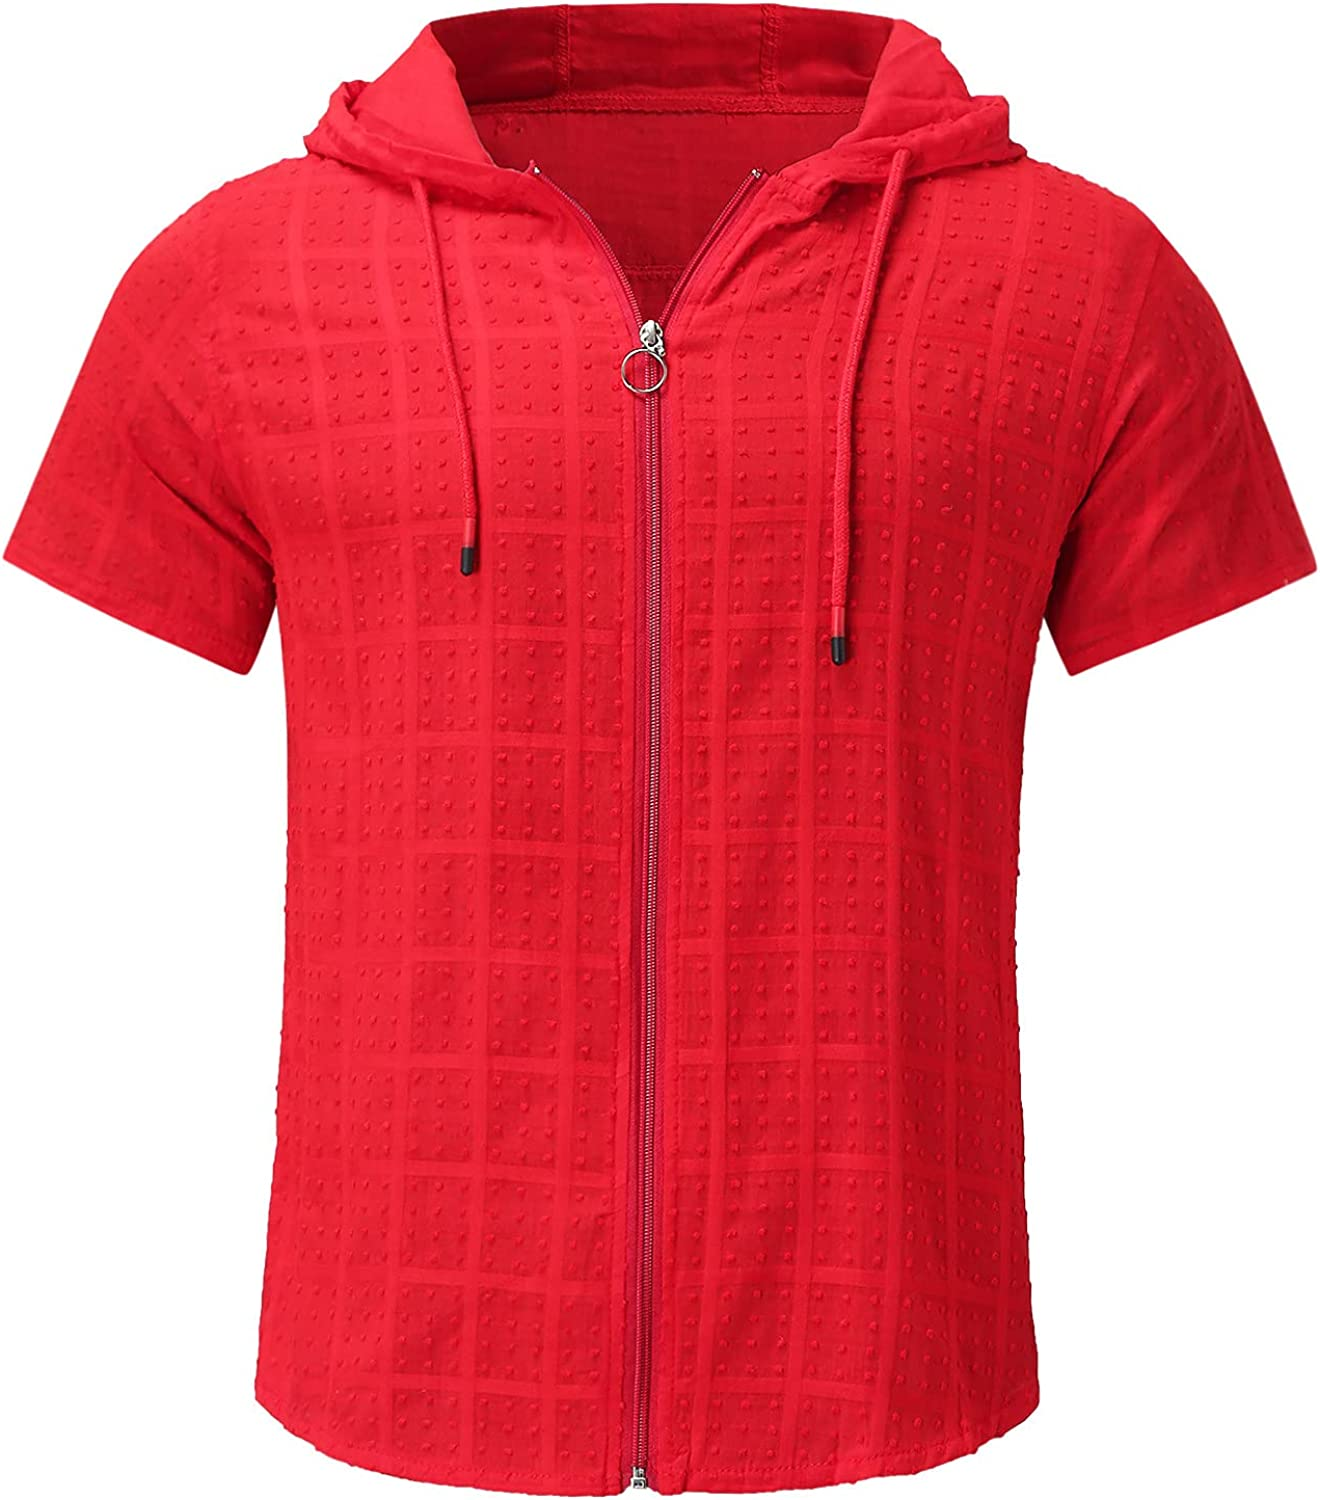 Mens Zip Up Hoodies Short Sleeve Big and Tall Shirts Fitness Gym Sweatshirt Tops Casual Summer Sports Blouse